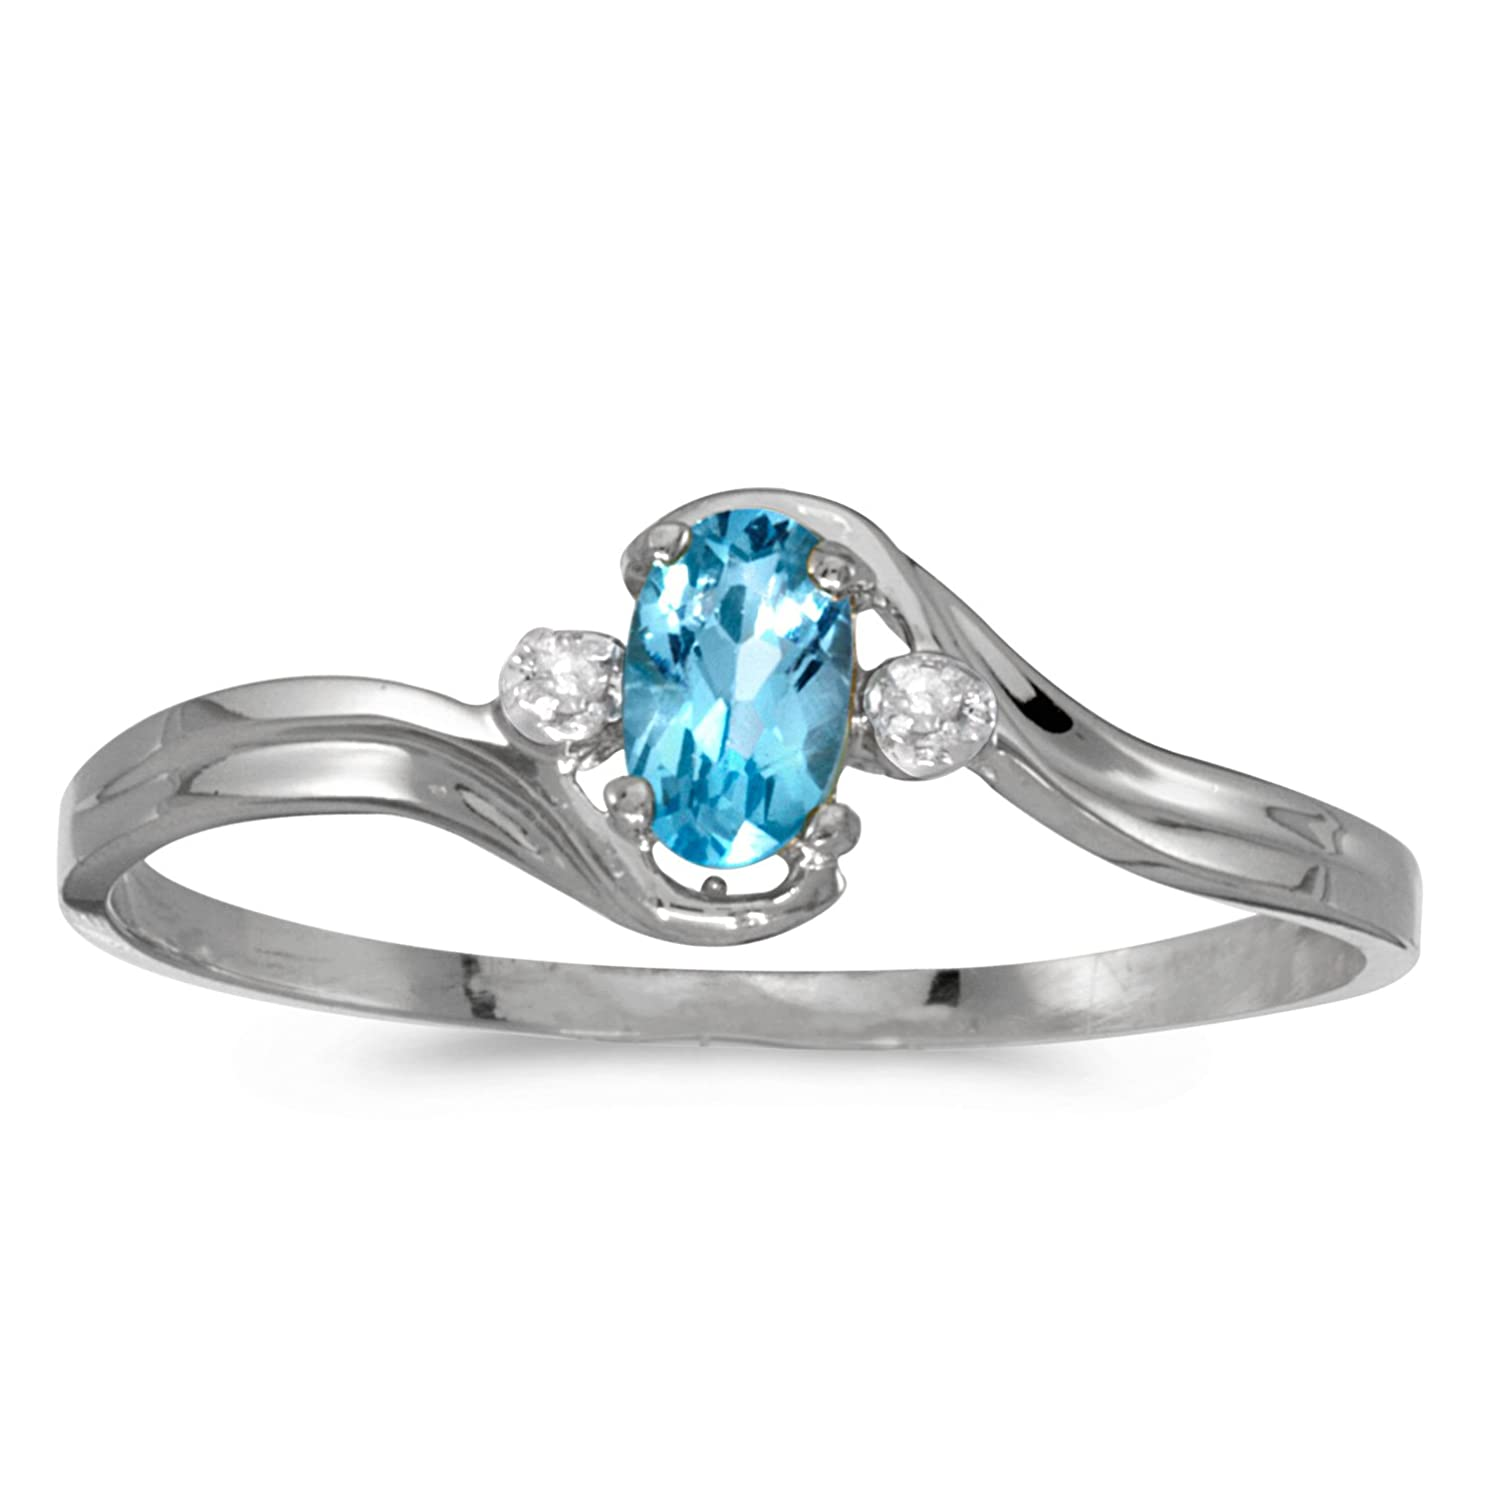 s wedding men topaz rings silver to birthstone army sterling ring us cz december mens blue